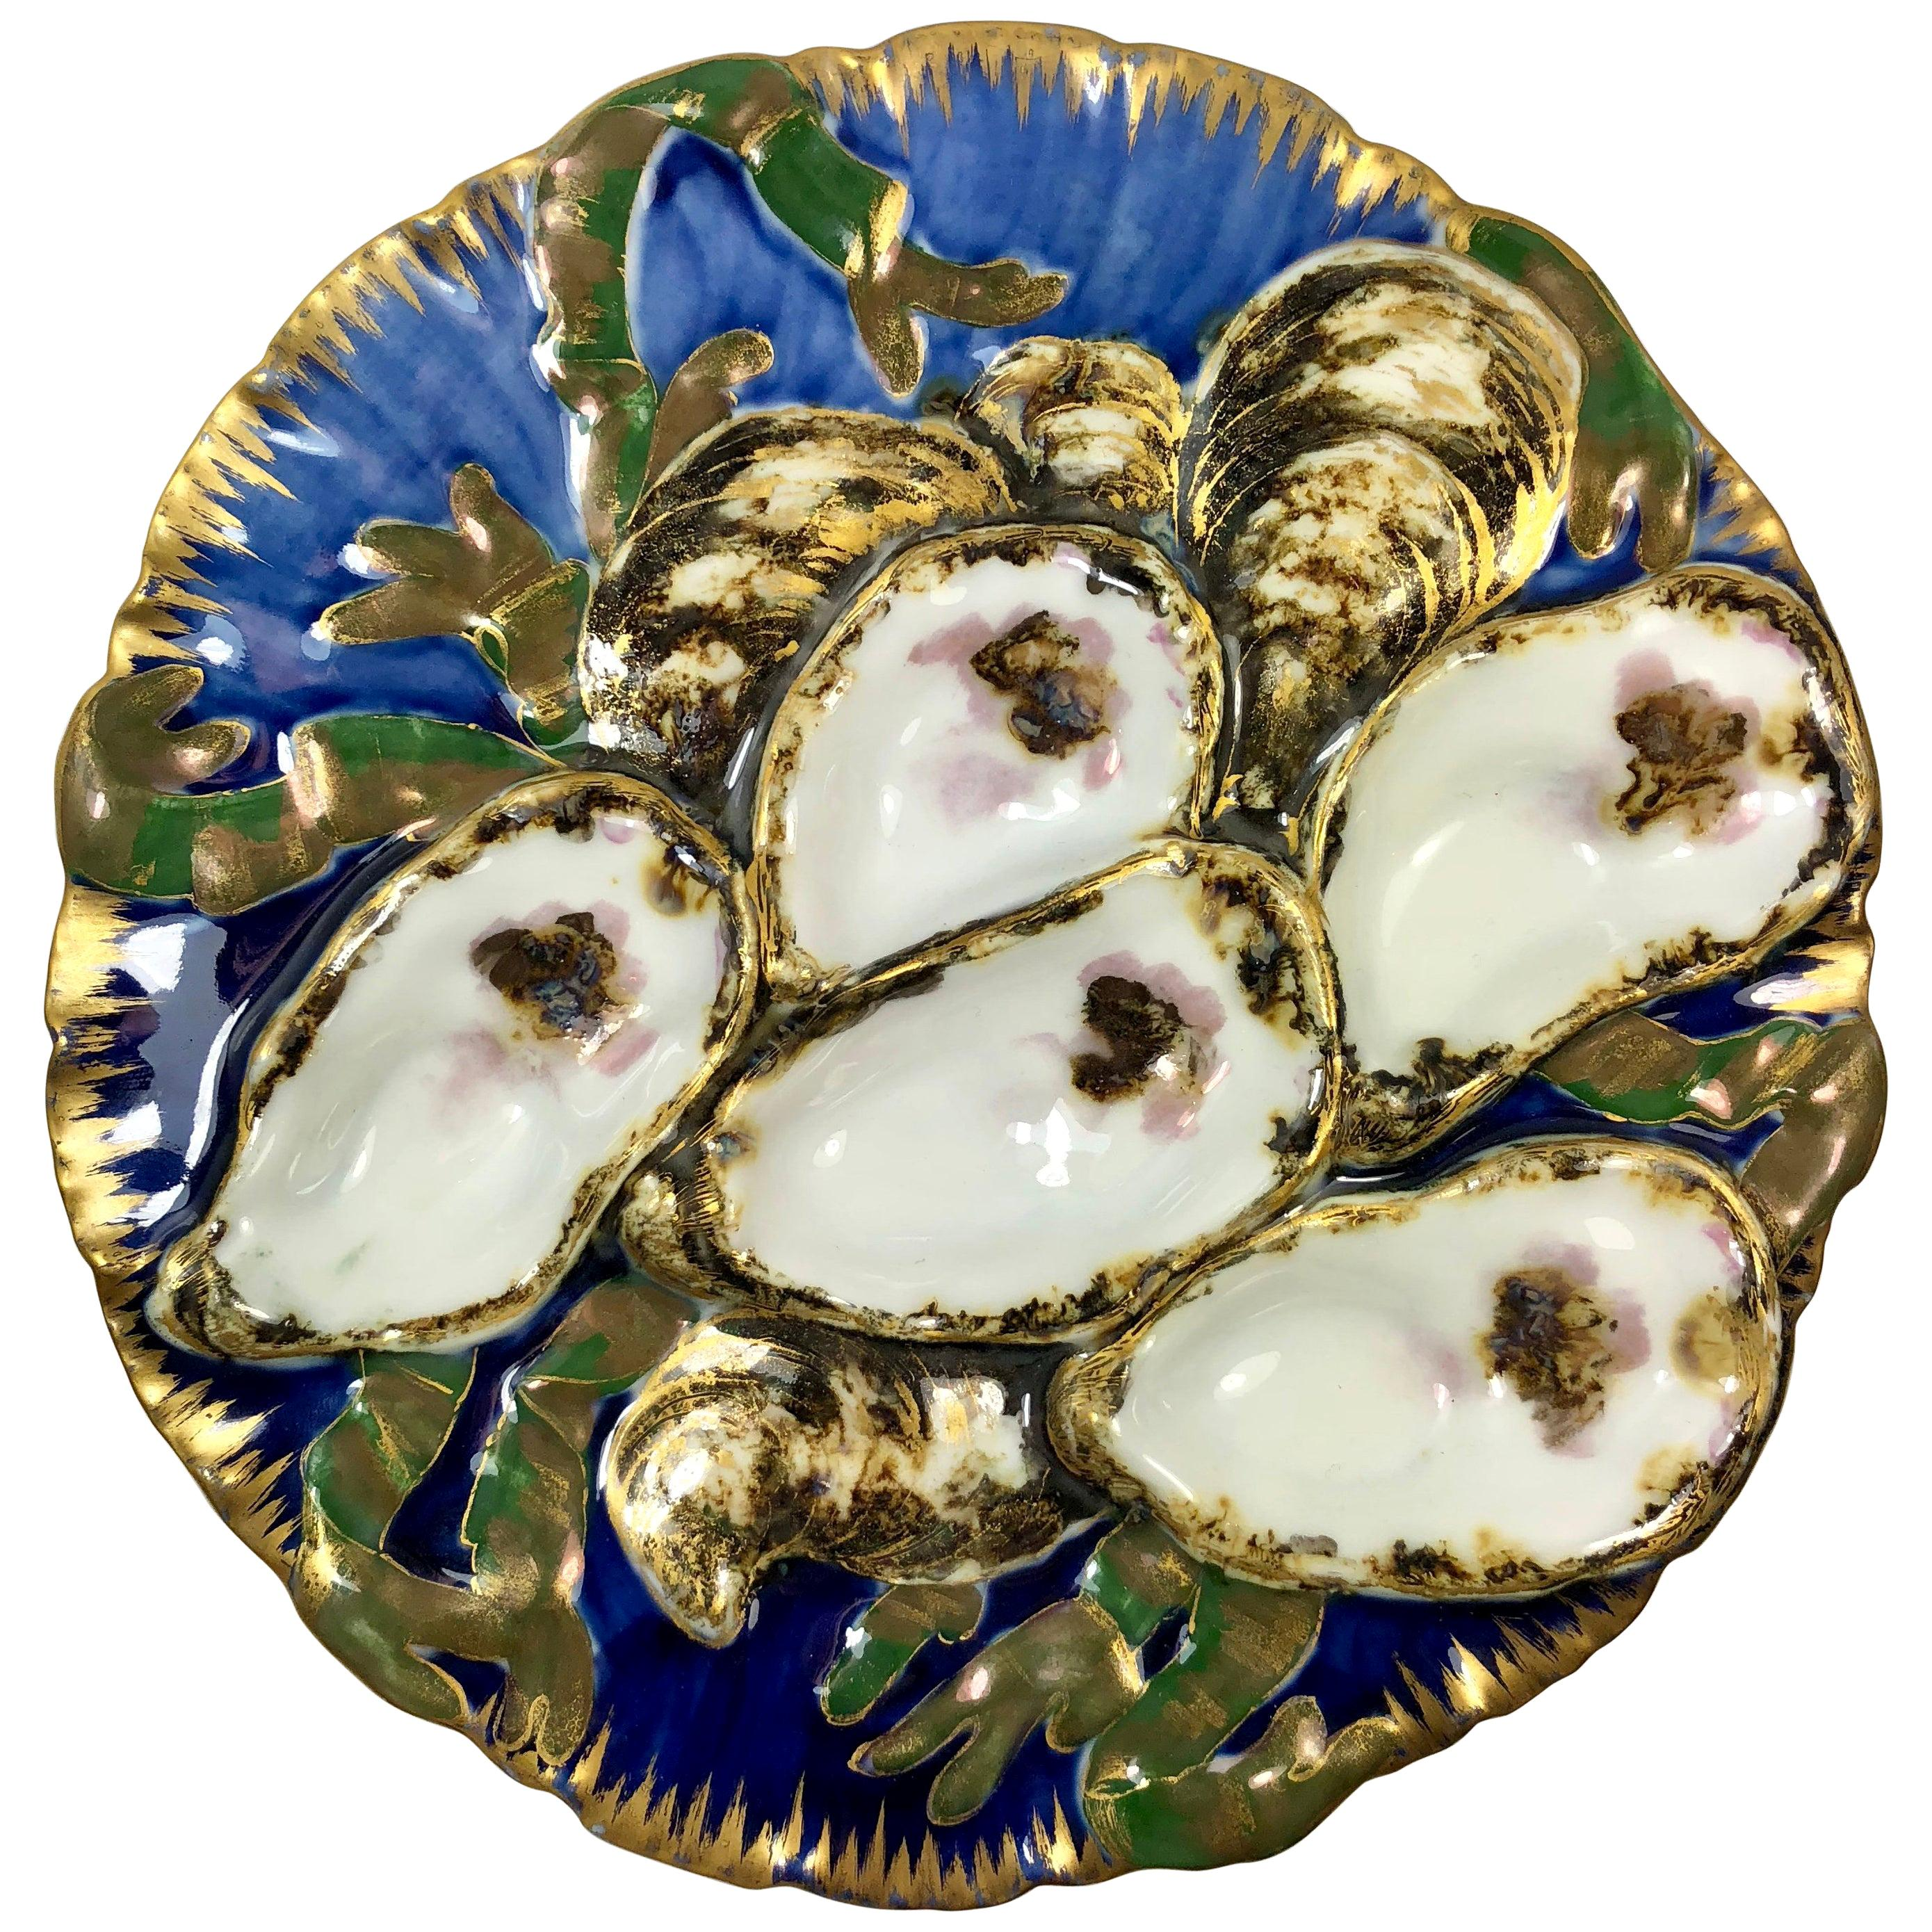 Presidential Oyster Plate